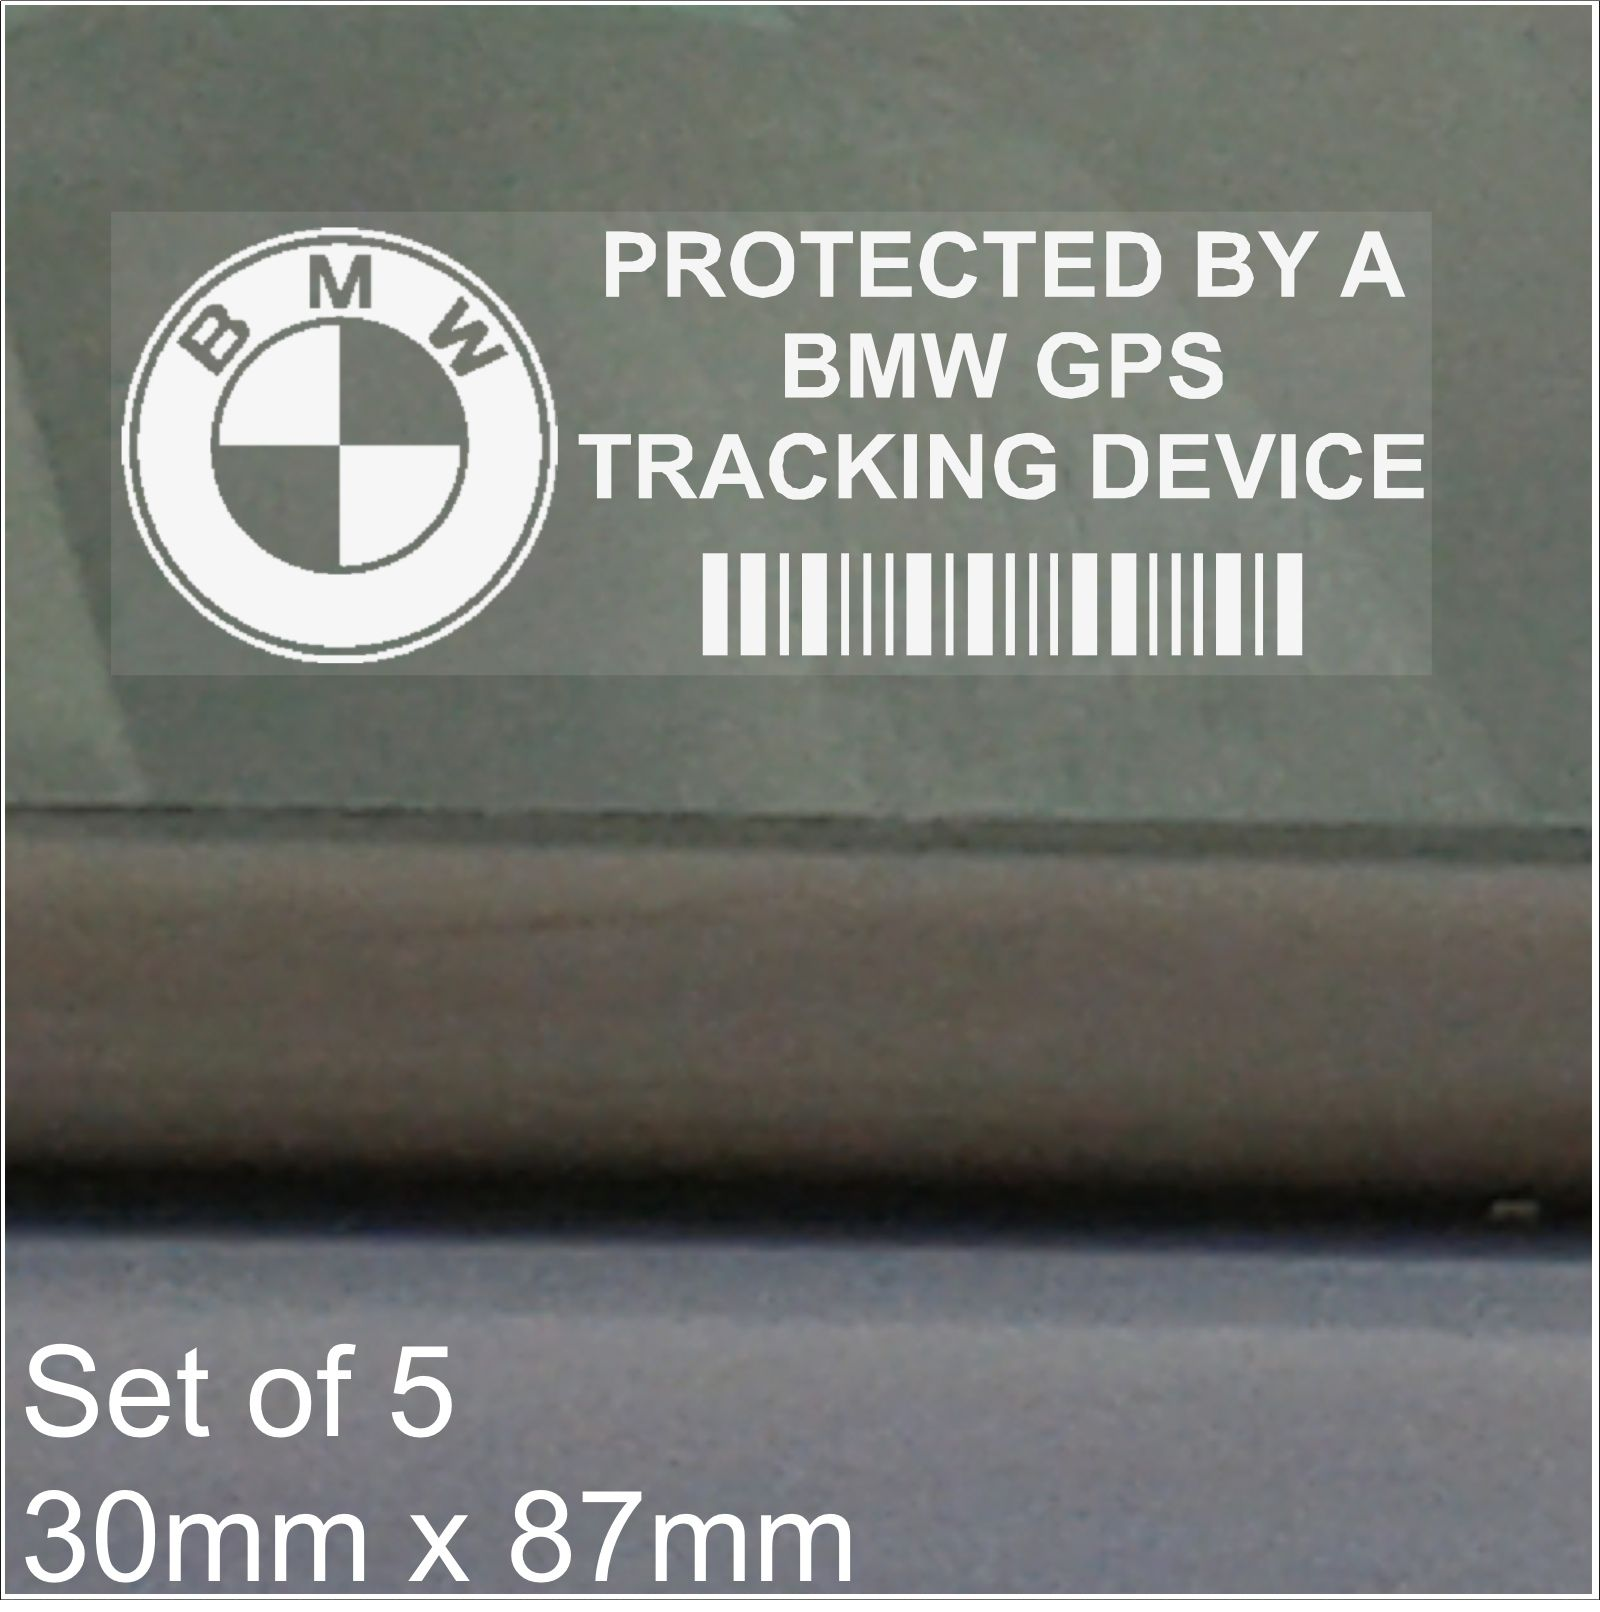 Gps Car Tracker >> 5 x BMW GPS Tracking Device Security WINDOW Stickers-87x30mm-3 4 5 6 7 E M F G Series Car Van ...